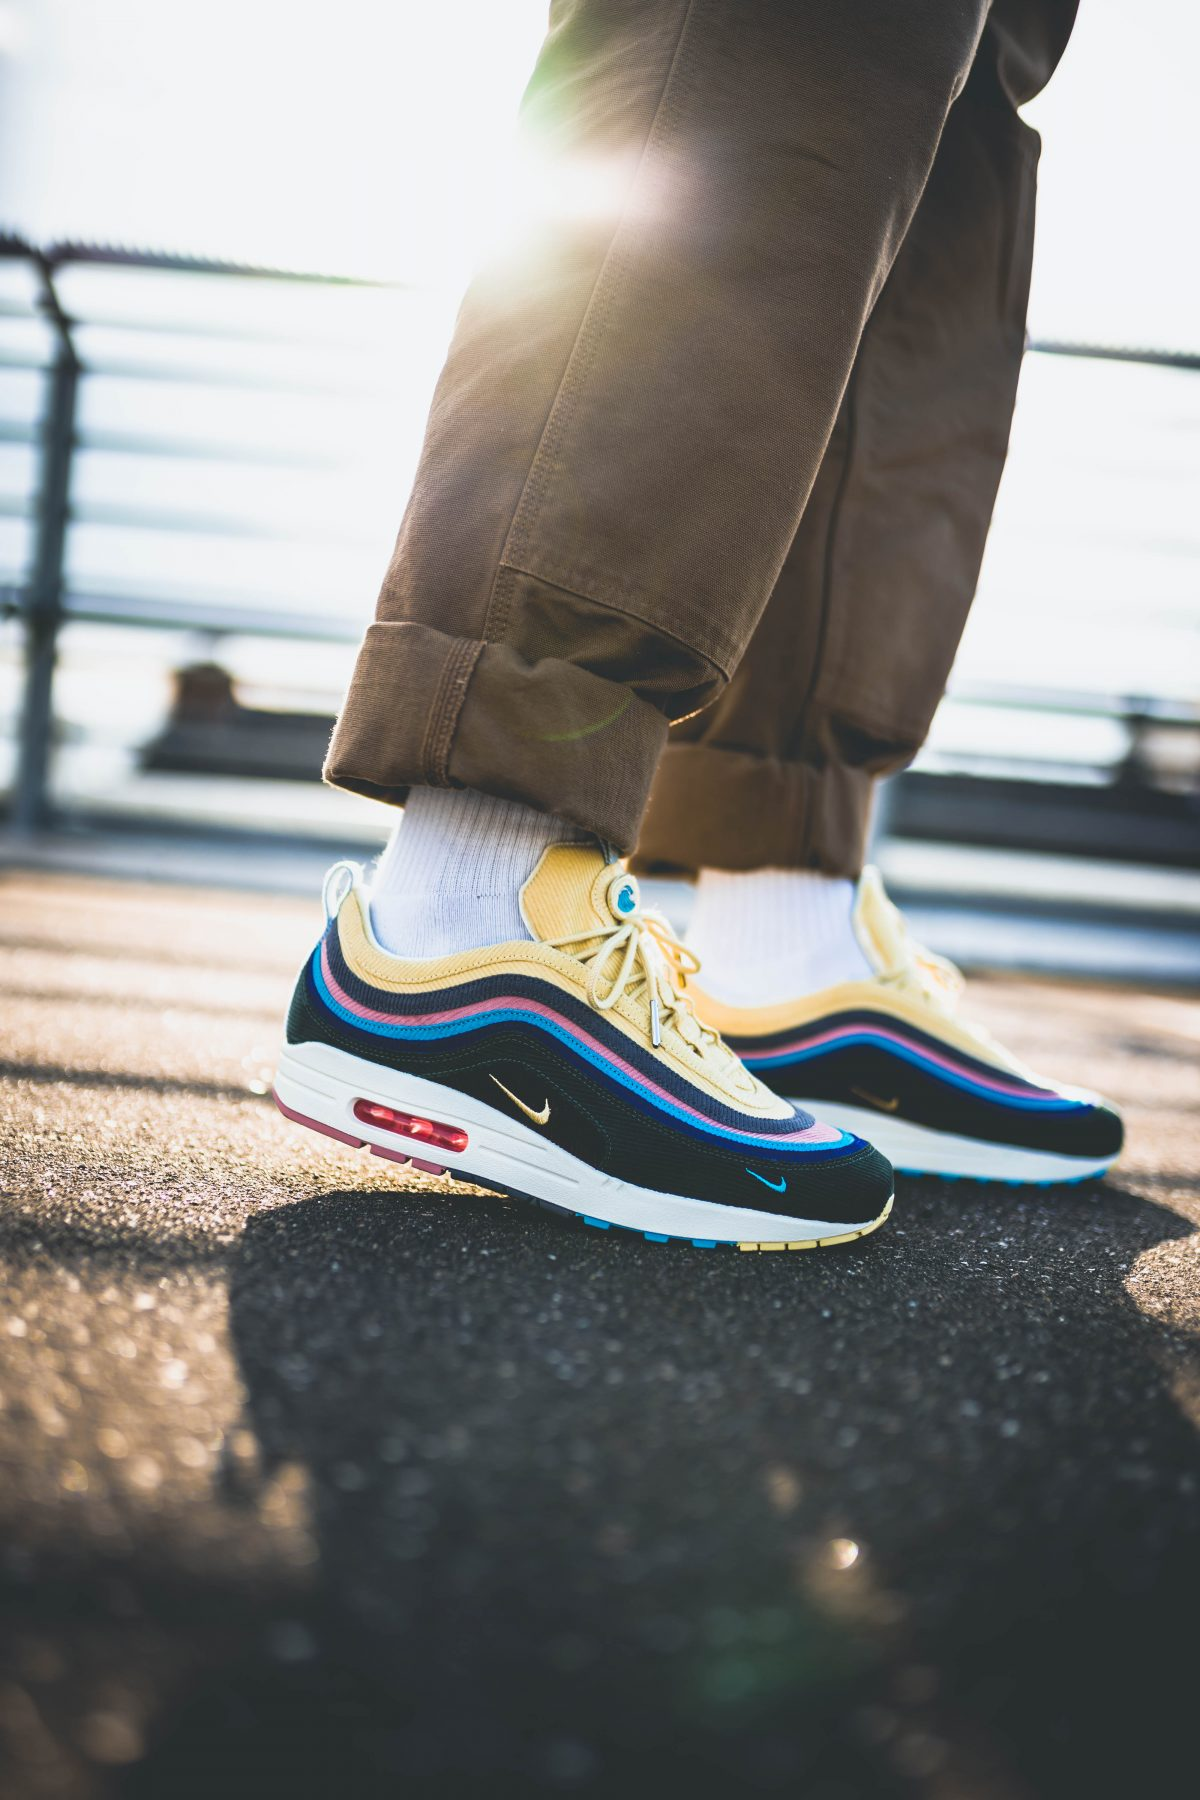 online store f8f70 24614 Nike Air Max 1/97 by Sean Weatherspoon - on feet | Dead Stock